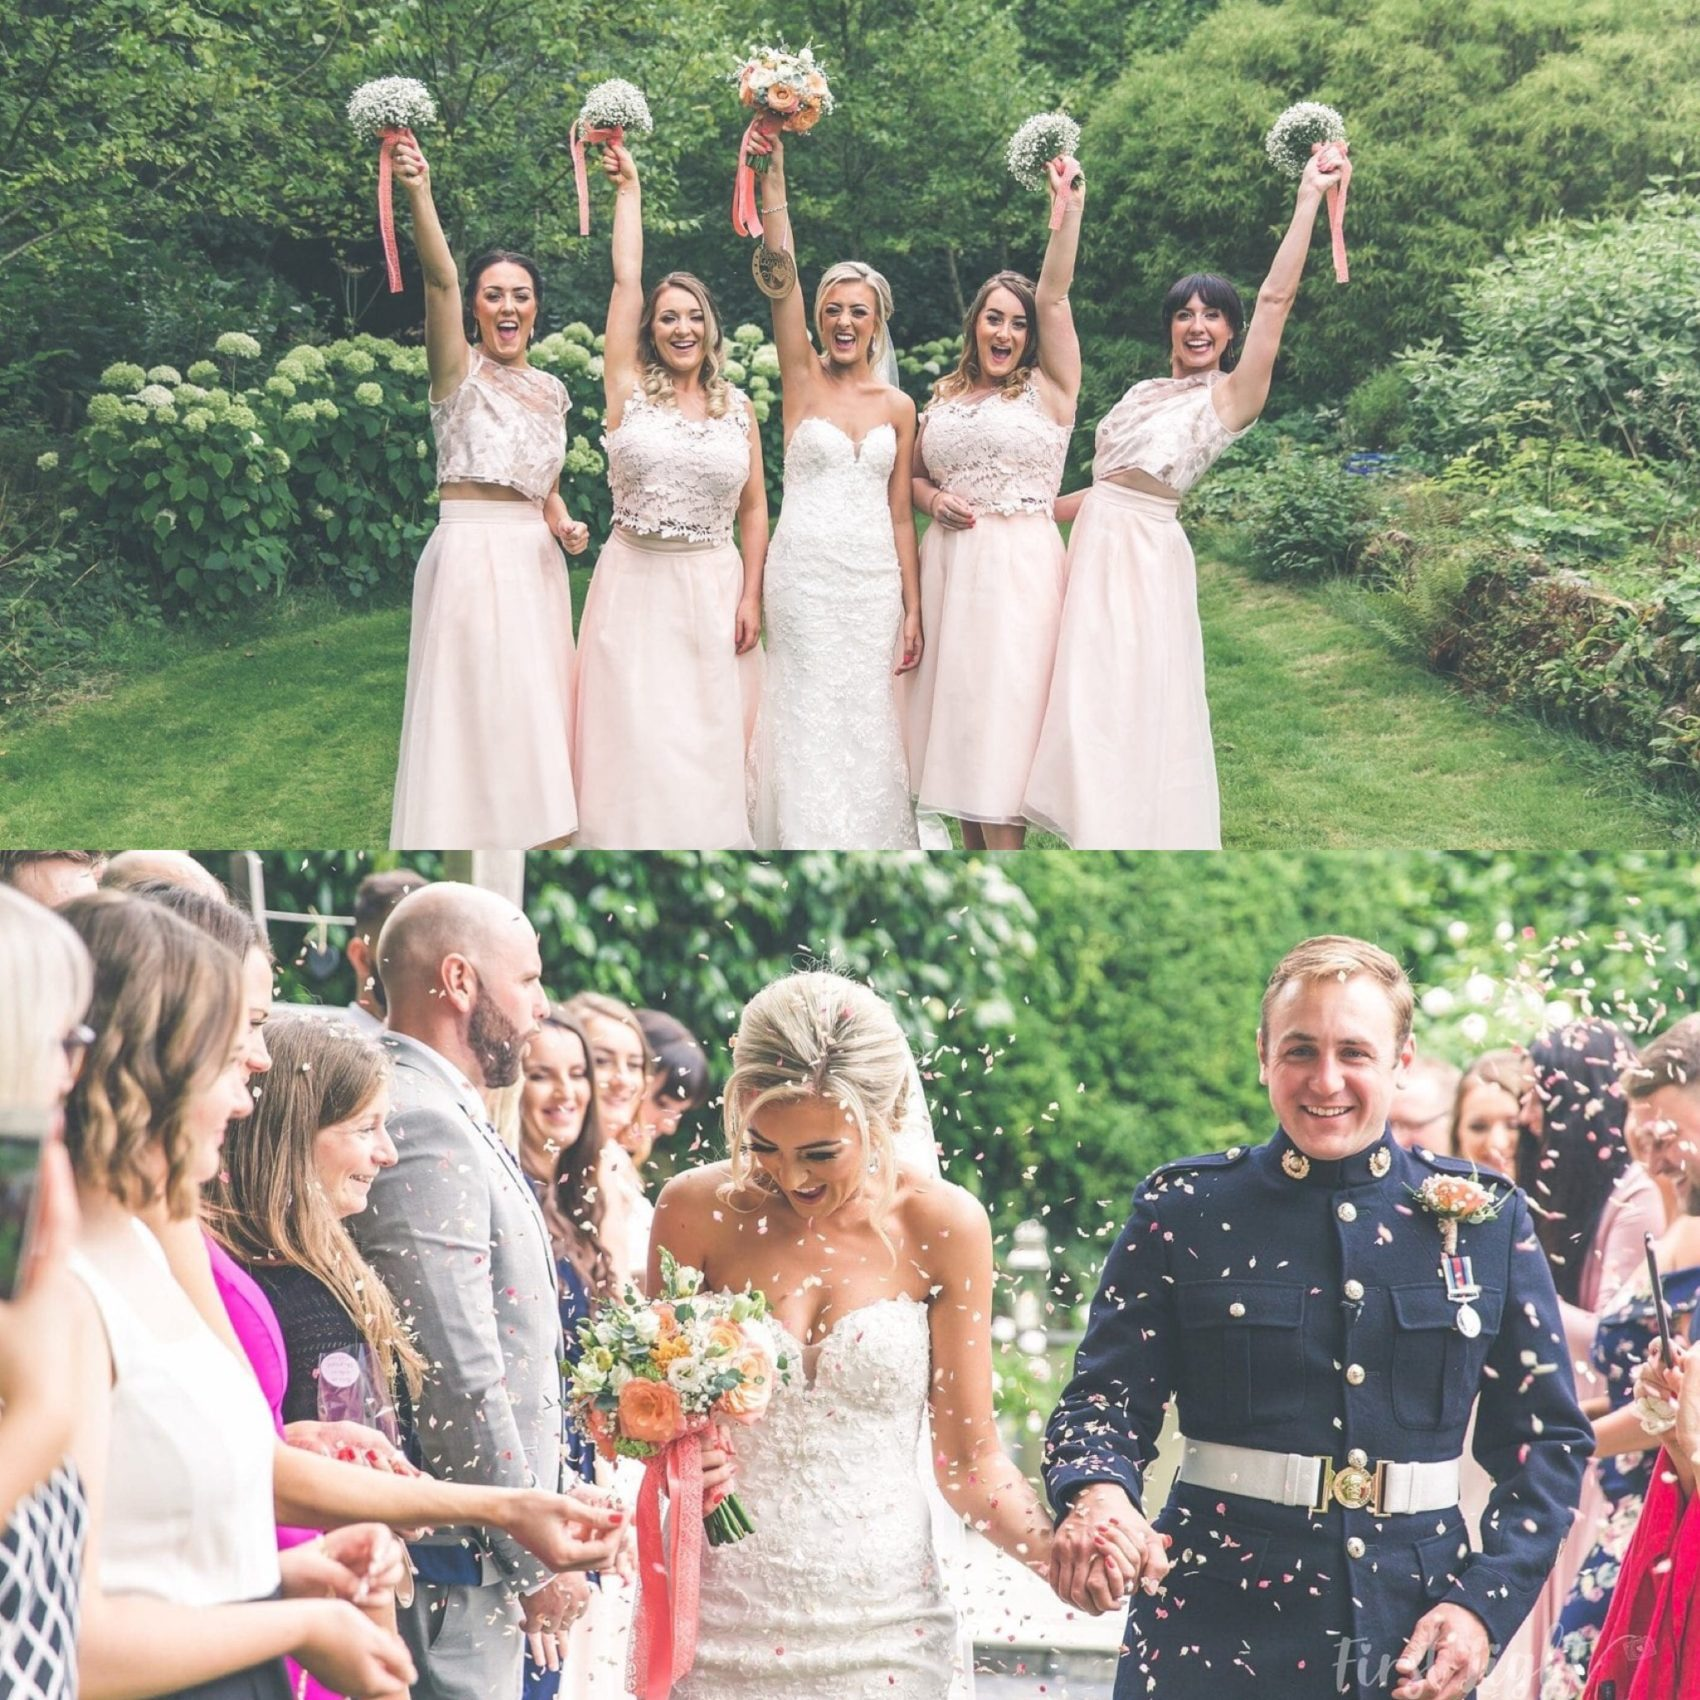 Bright, filter, light, airy, fairy, wedding party, wedding, guests, friends, confetti, shot, colour, coral, pacific, flowers, bridesmaids, bride & Groom, bride, ever after, lower grenofen